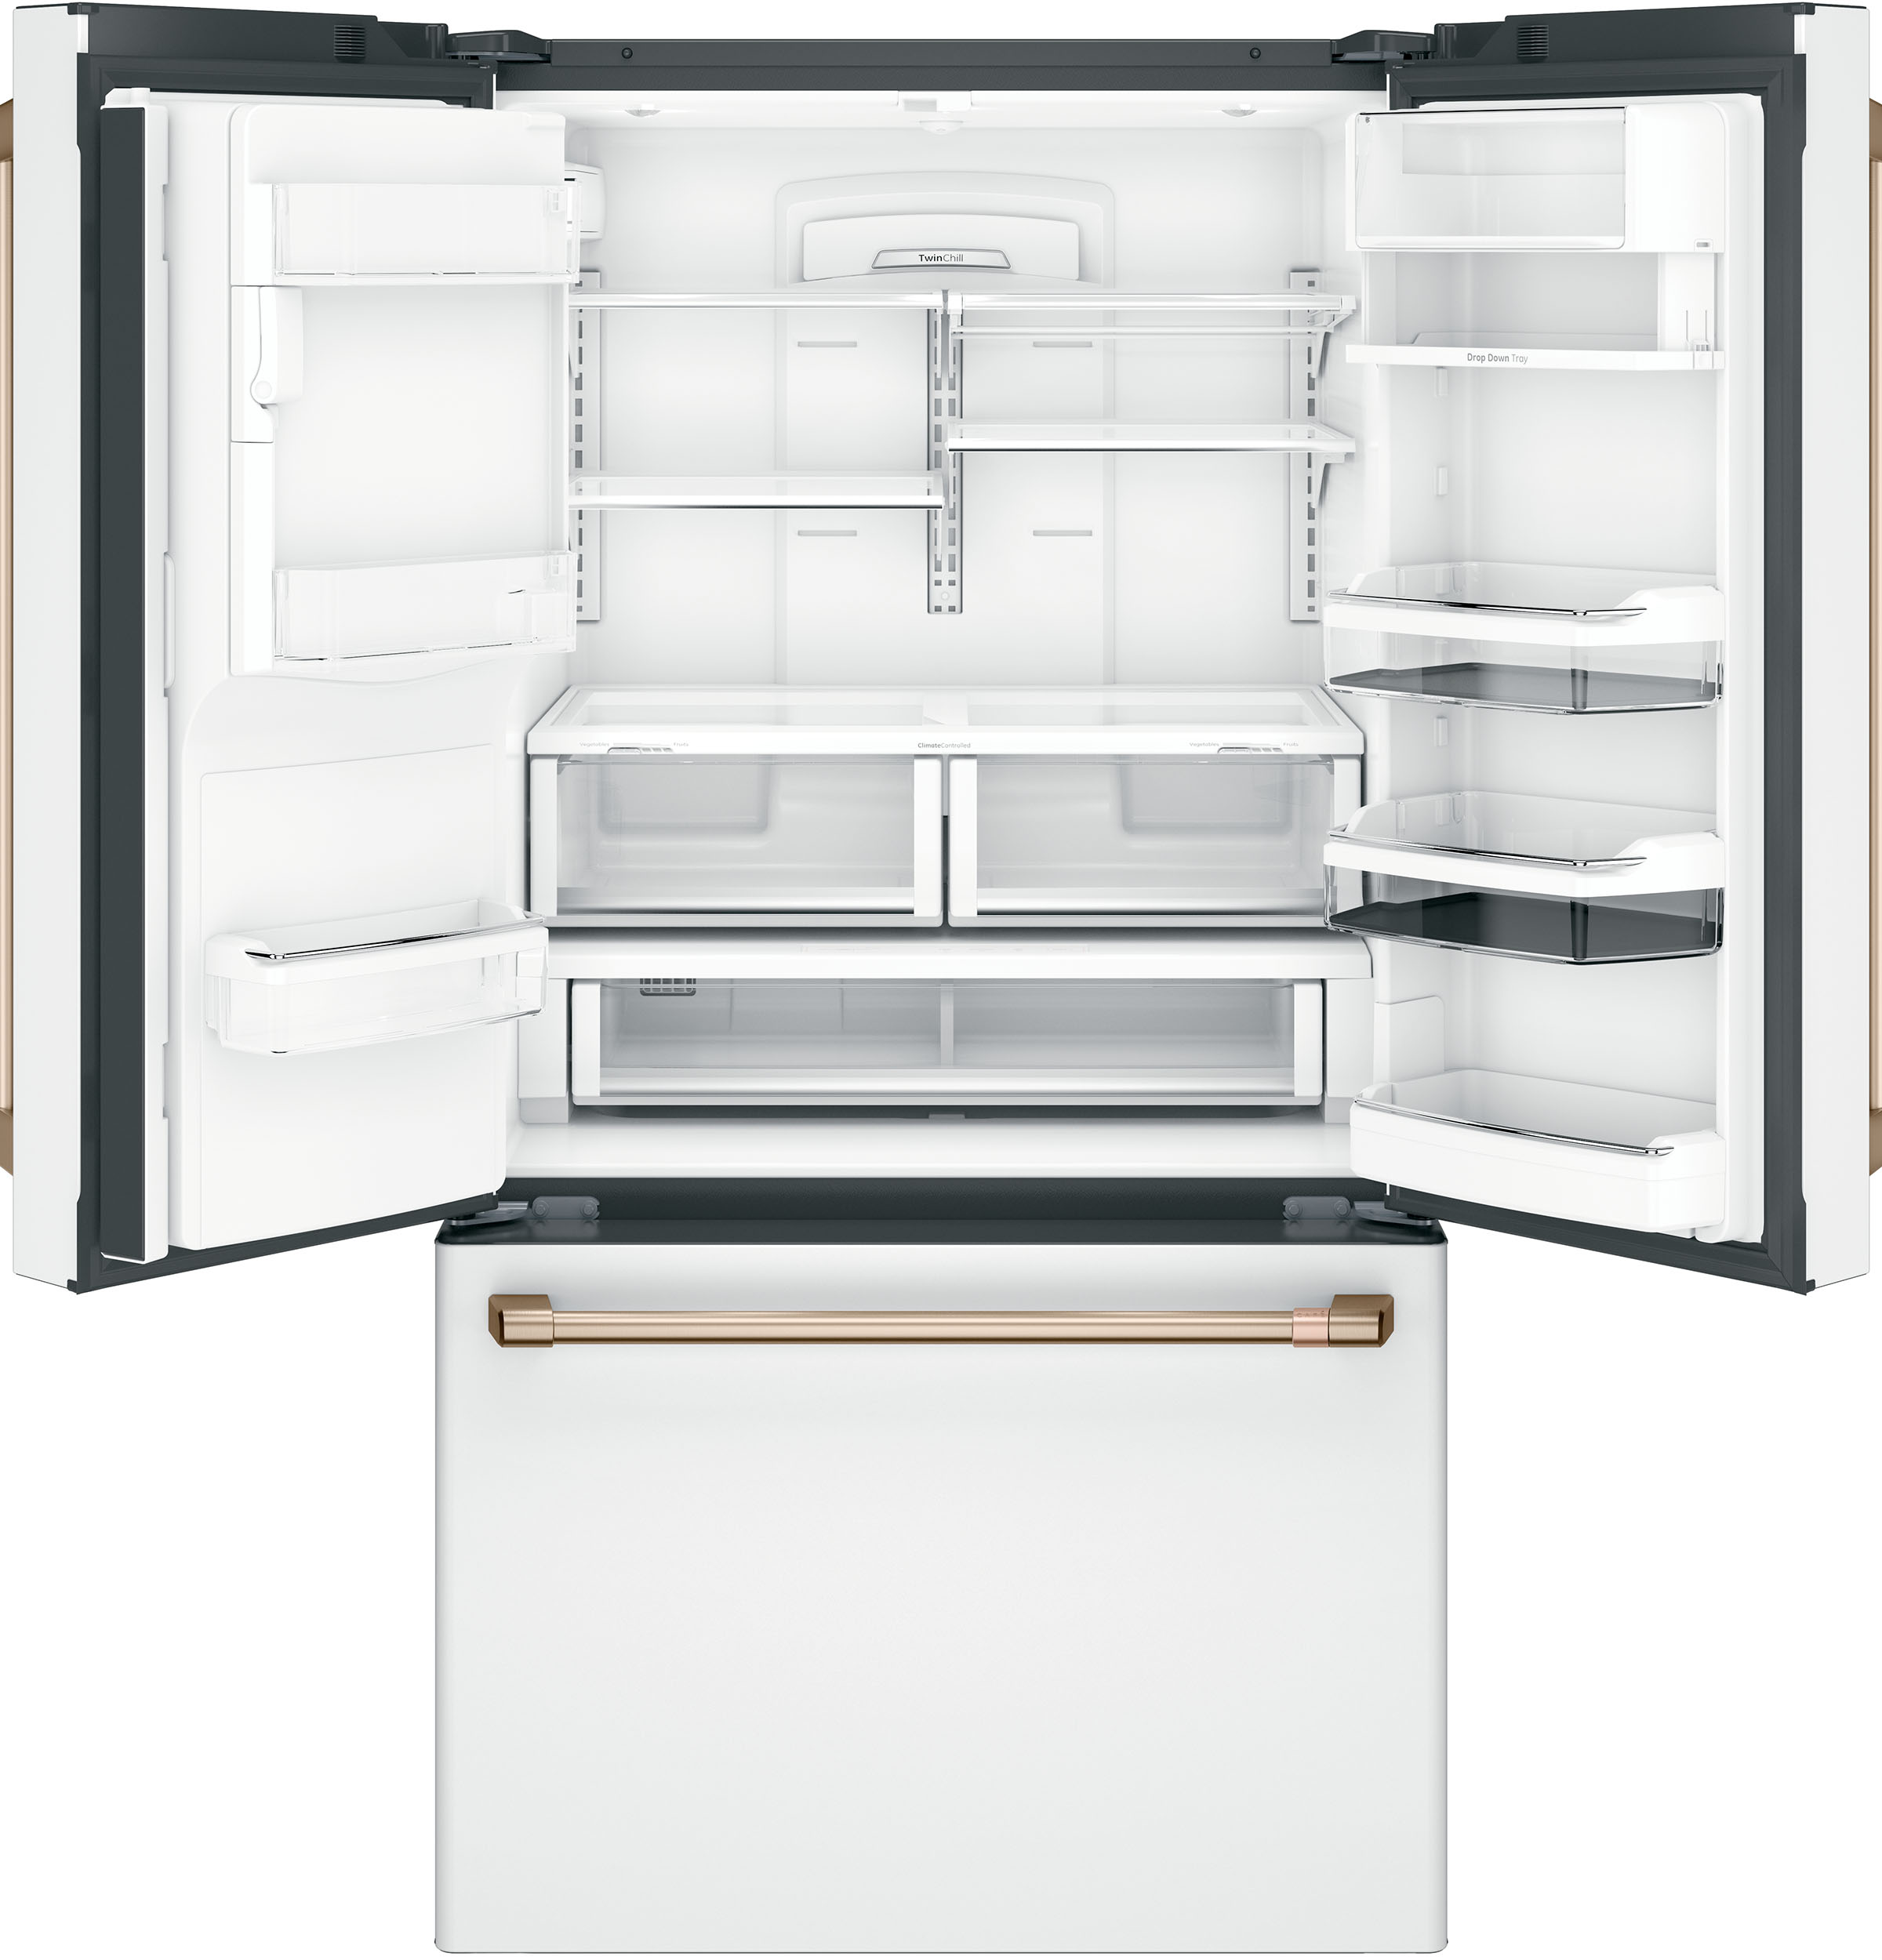 Model: CFE28TP4MW2 | Café™ ENERGY STAR® 27.8 Cu. Ft. French-Door Refrigerator with Hot Water Dispenser